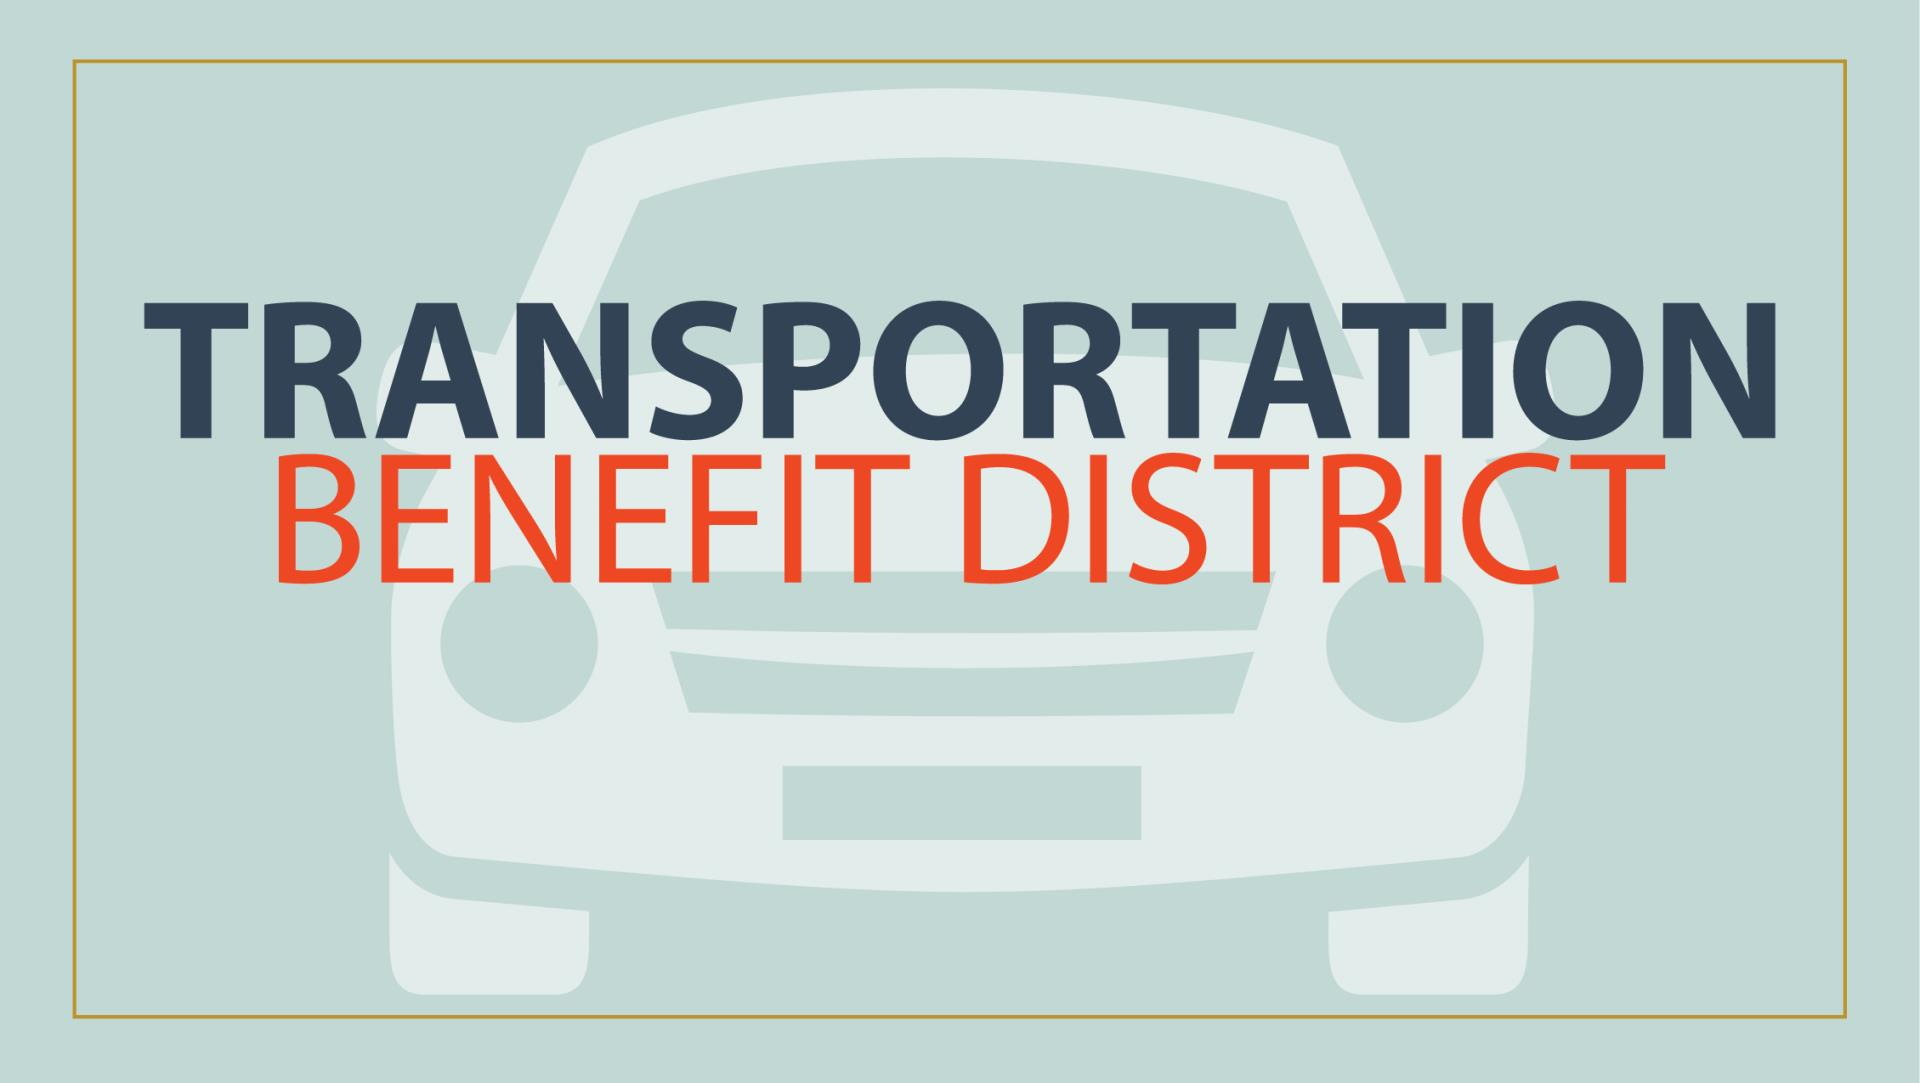 Transportation Benefit District